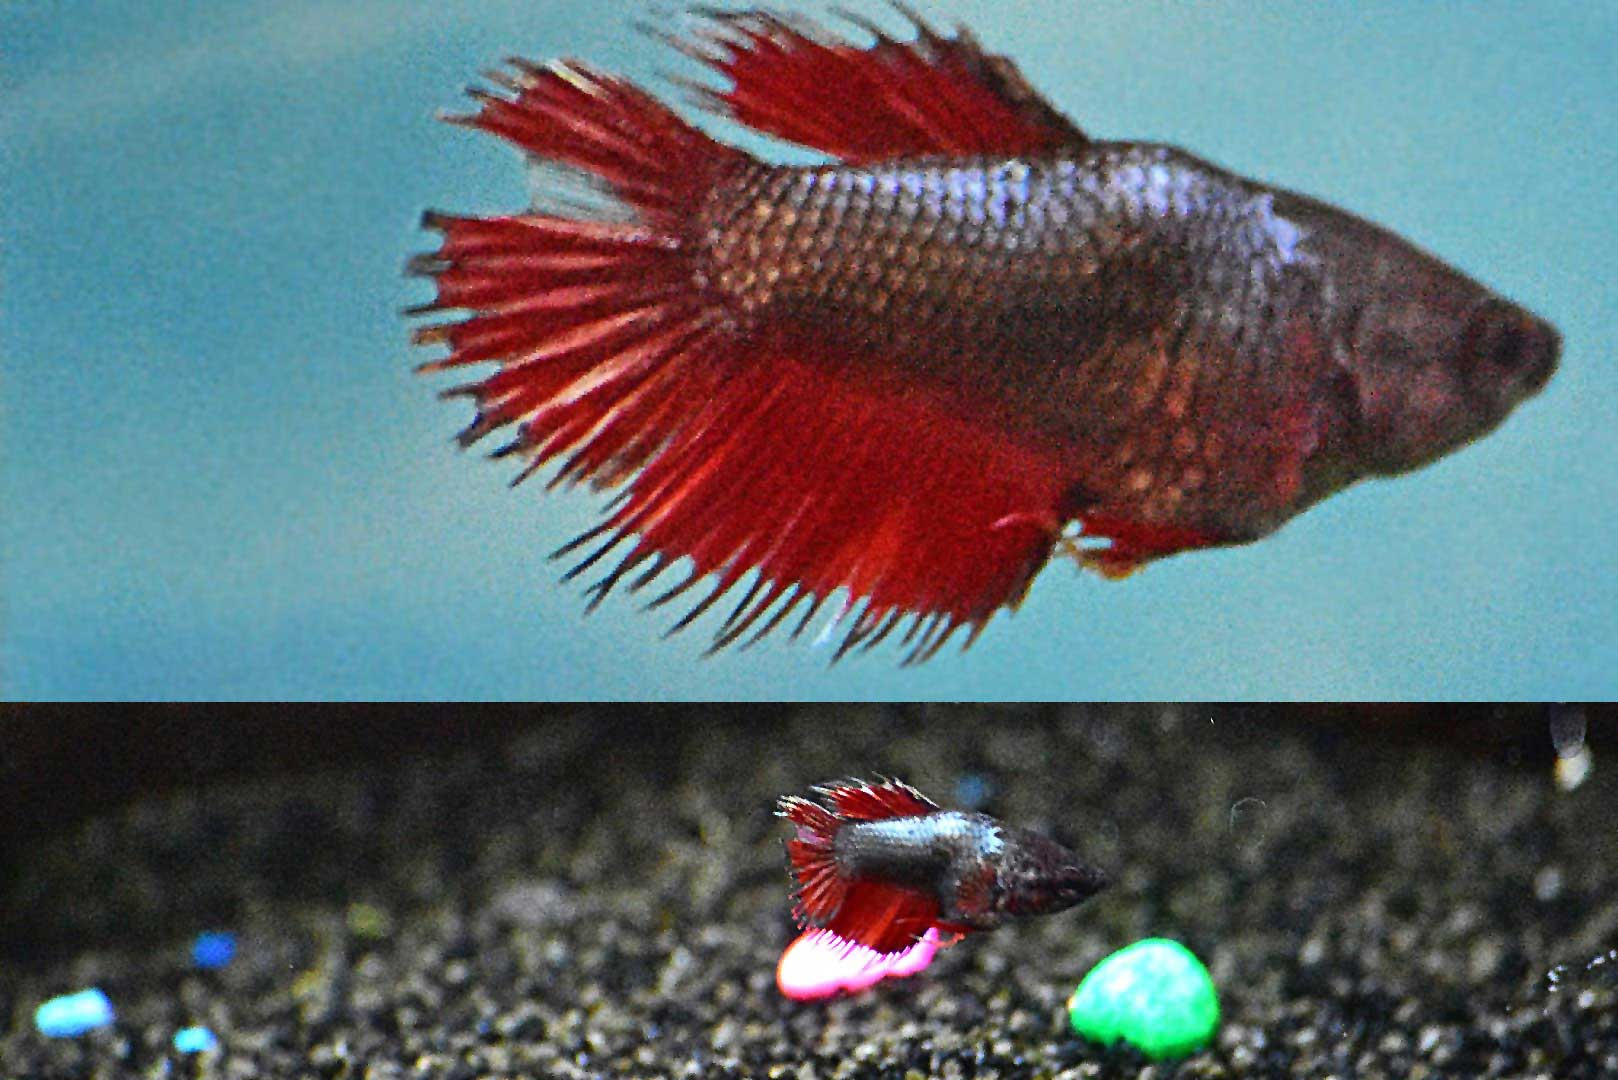 Betta fish are native to Asia, where they live in the shallow water of marshes, ponds, or slow-moving streams. Wayne's AquaWorld